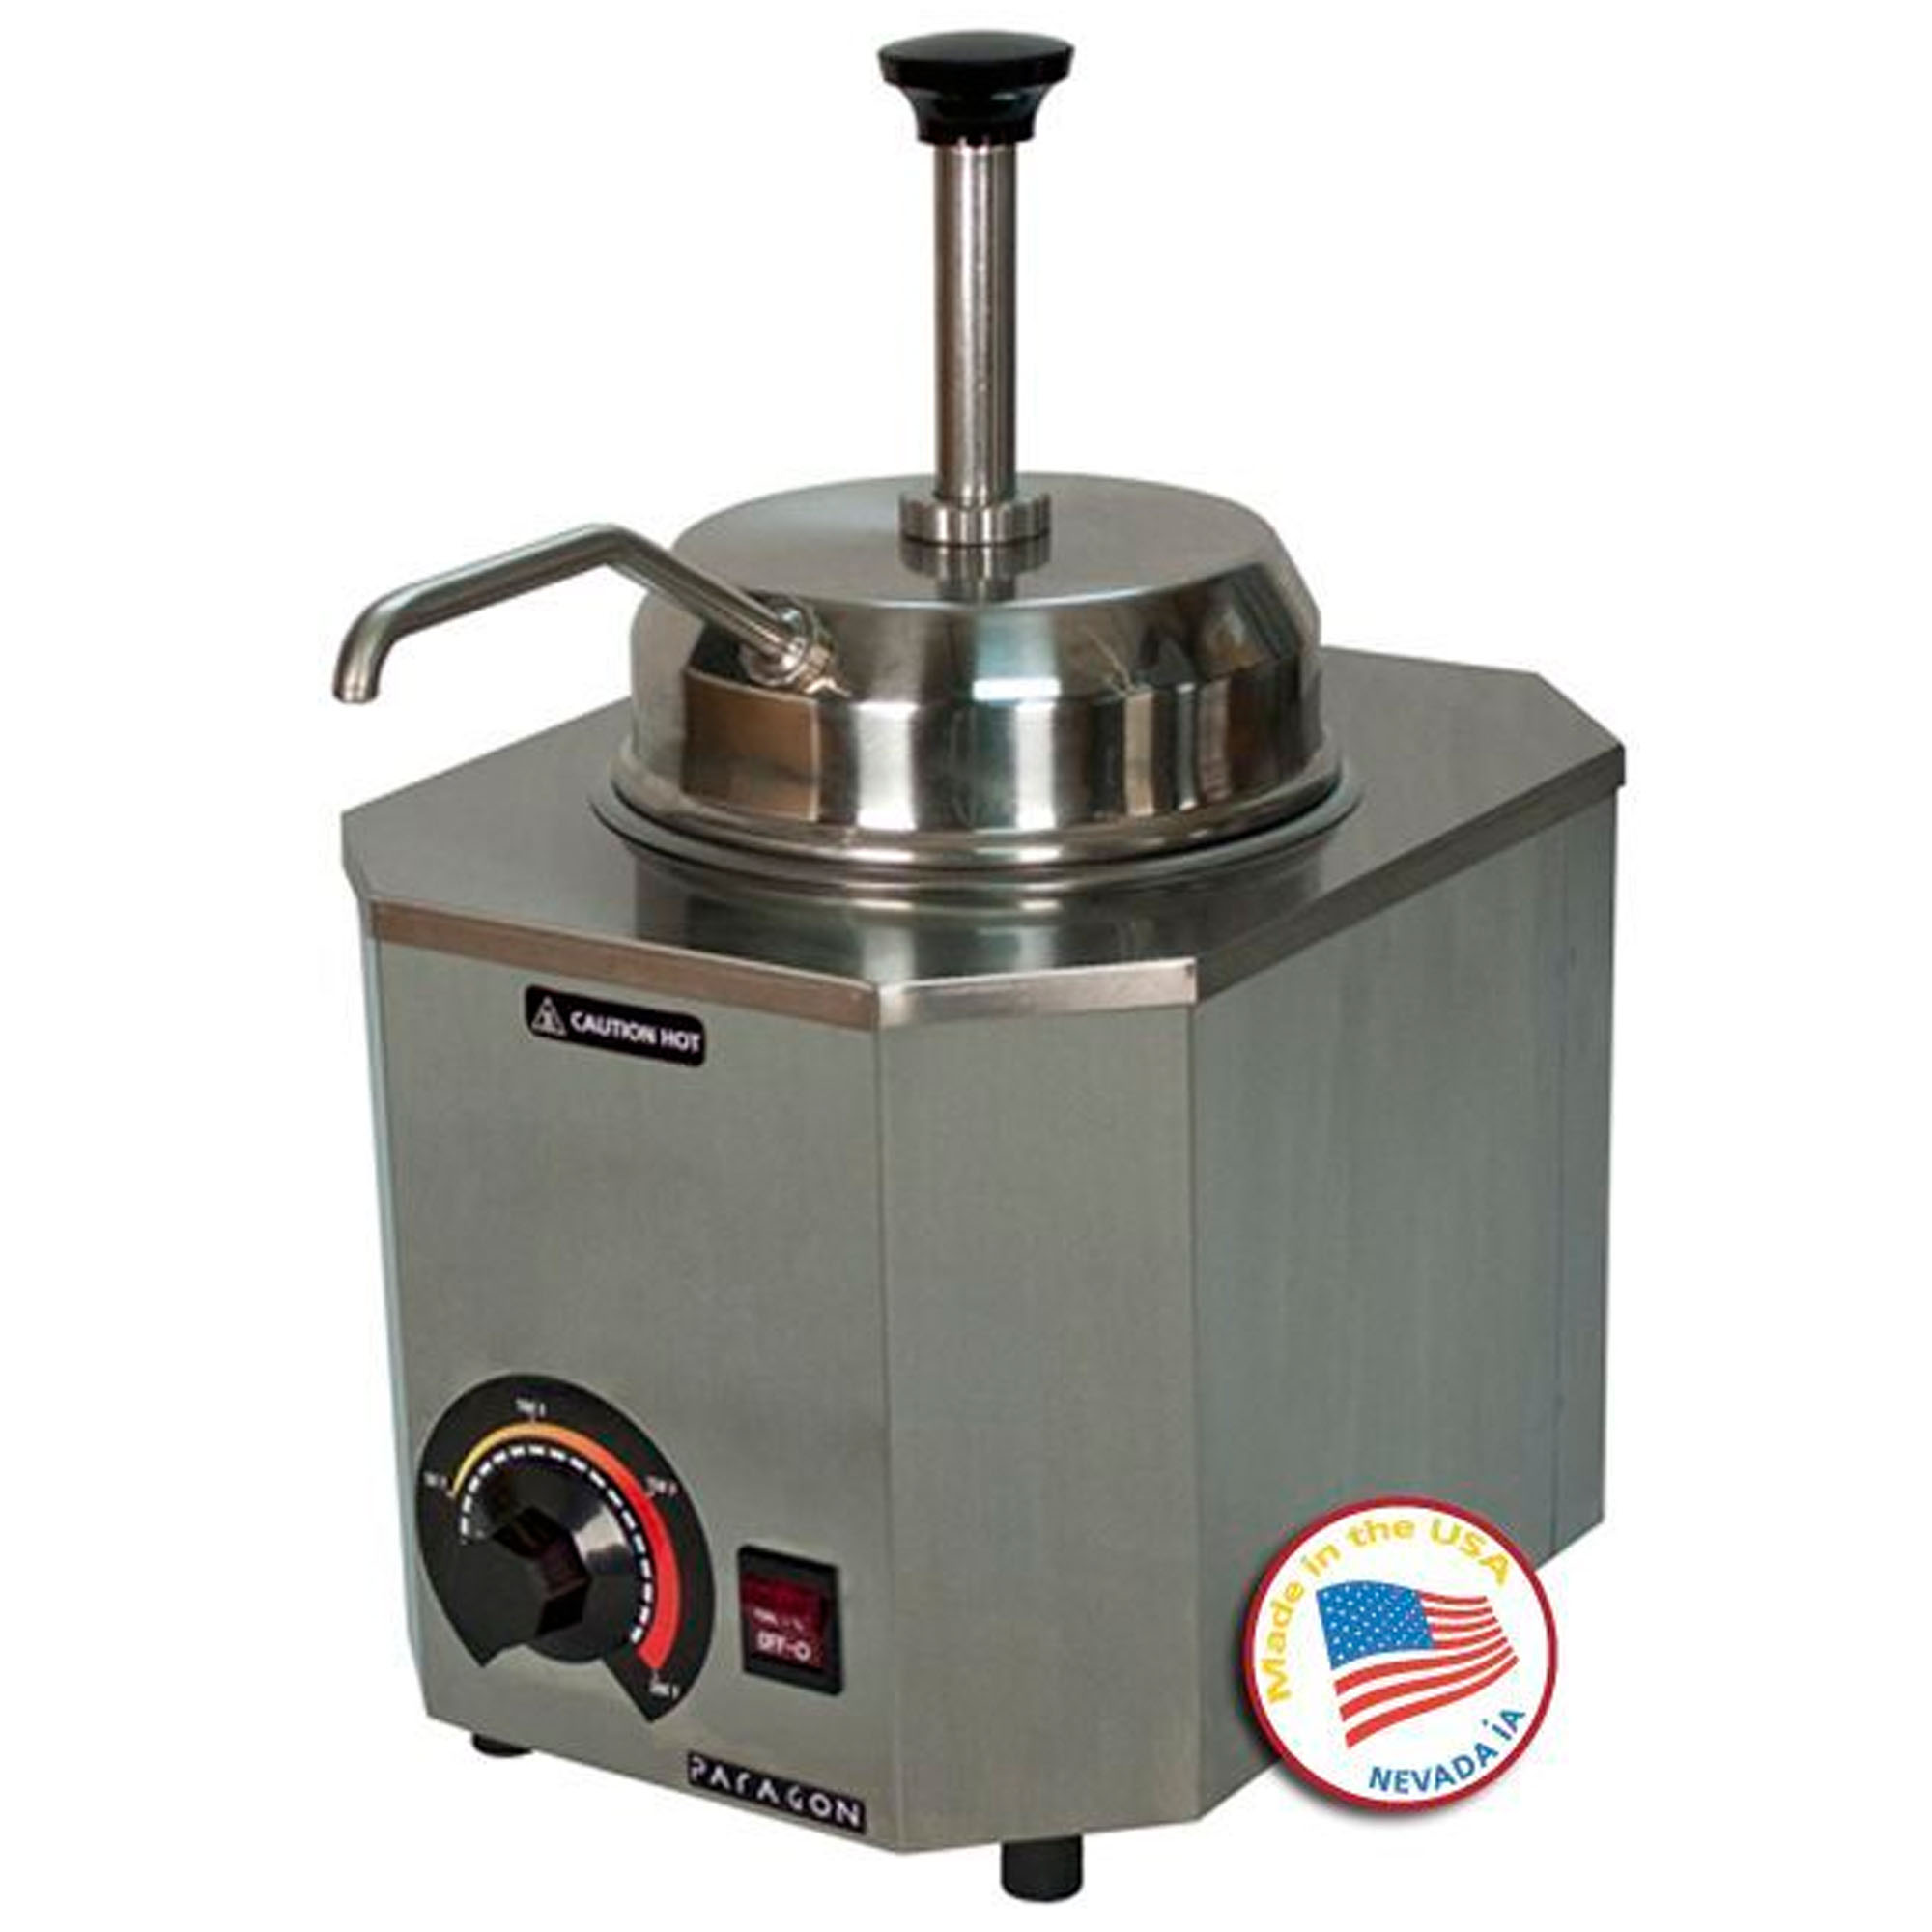 Click here for Paragon Pro-Deluxe Warmer with Pump prices